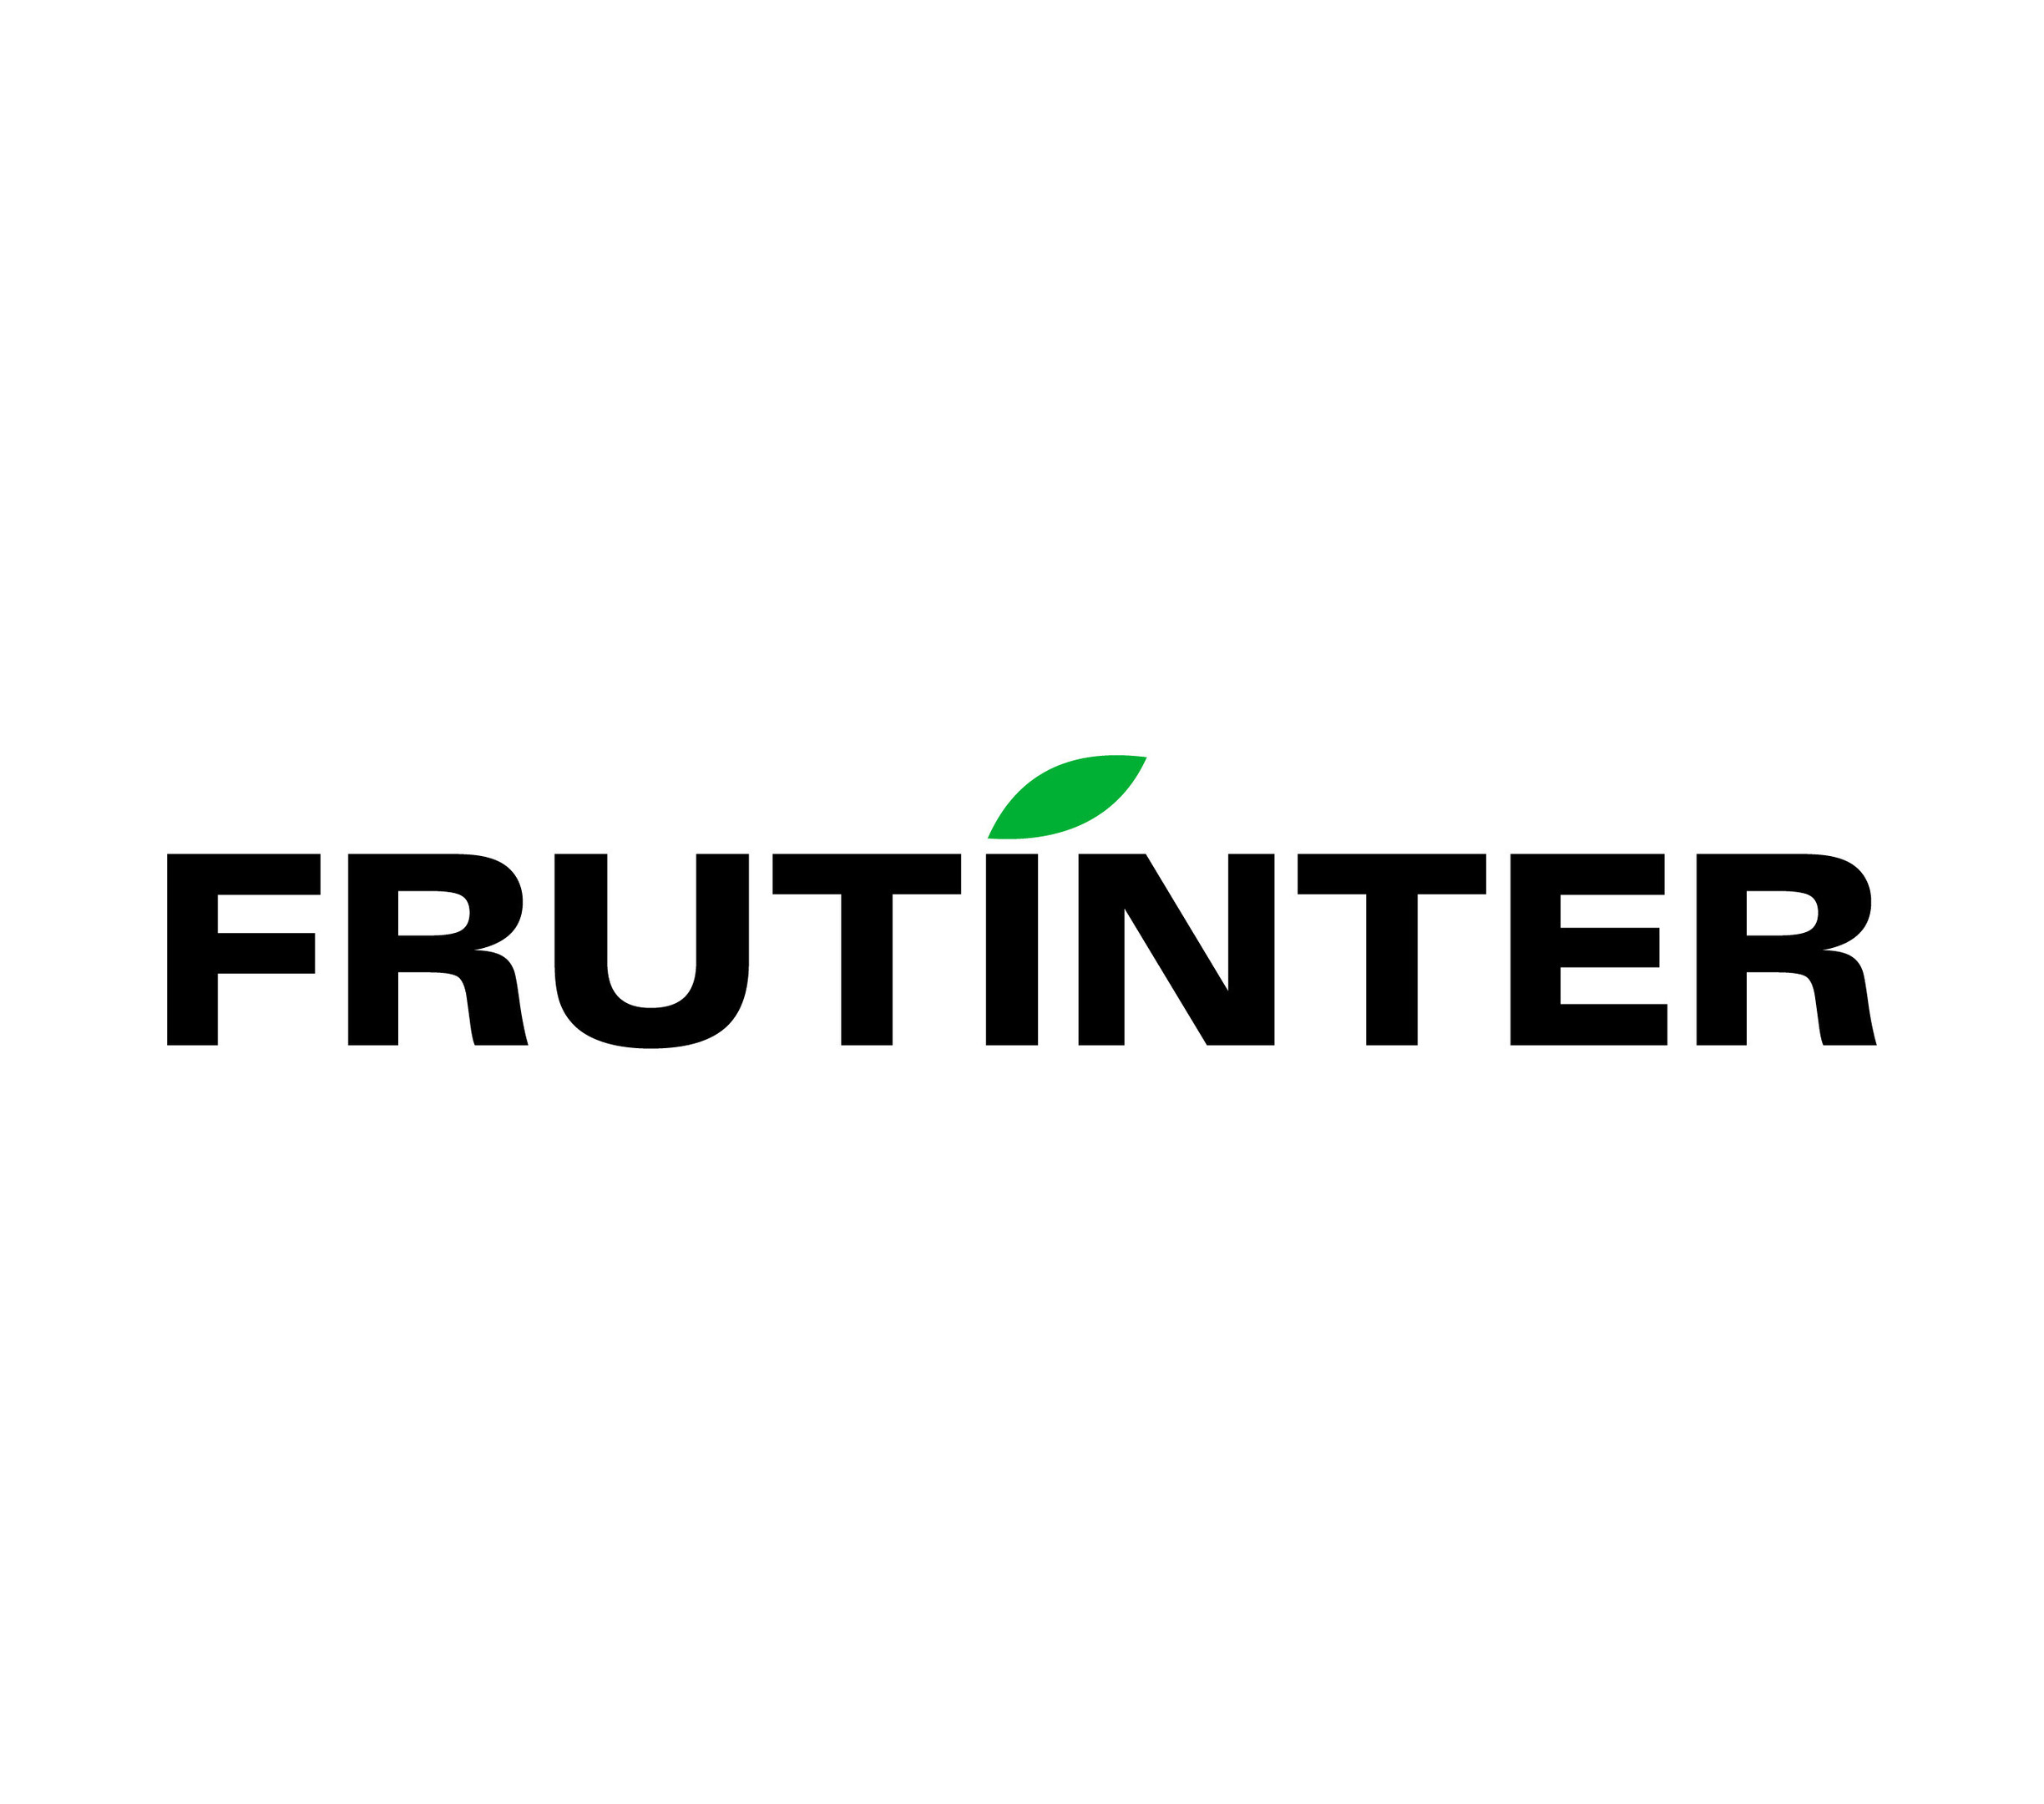 Frutinter focuses on sustainable solutions